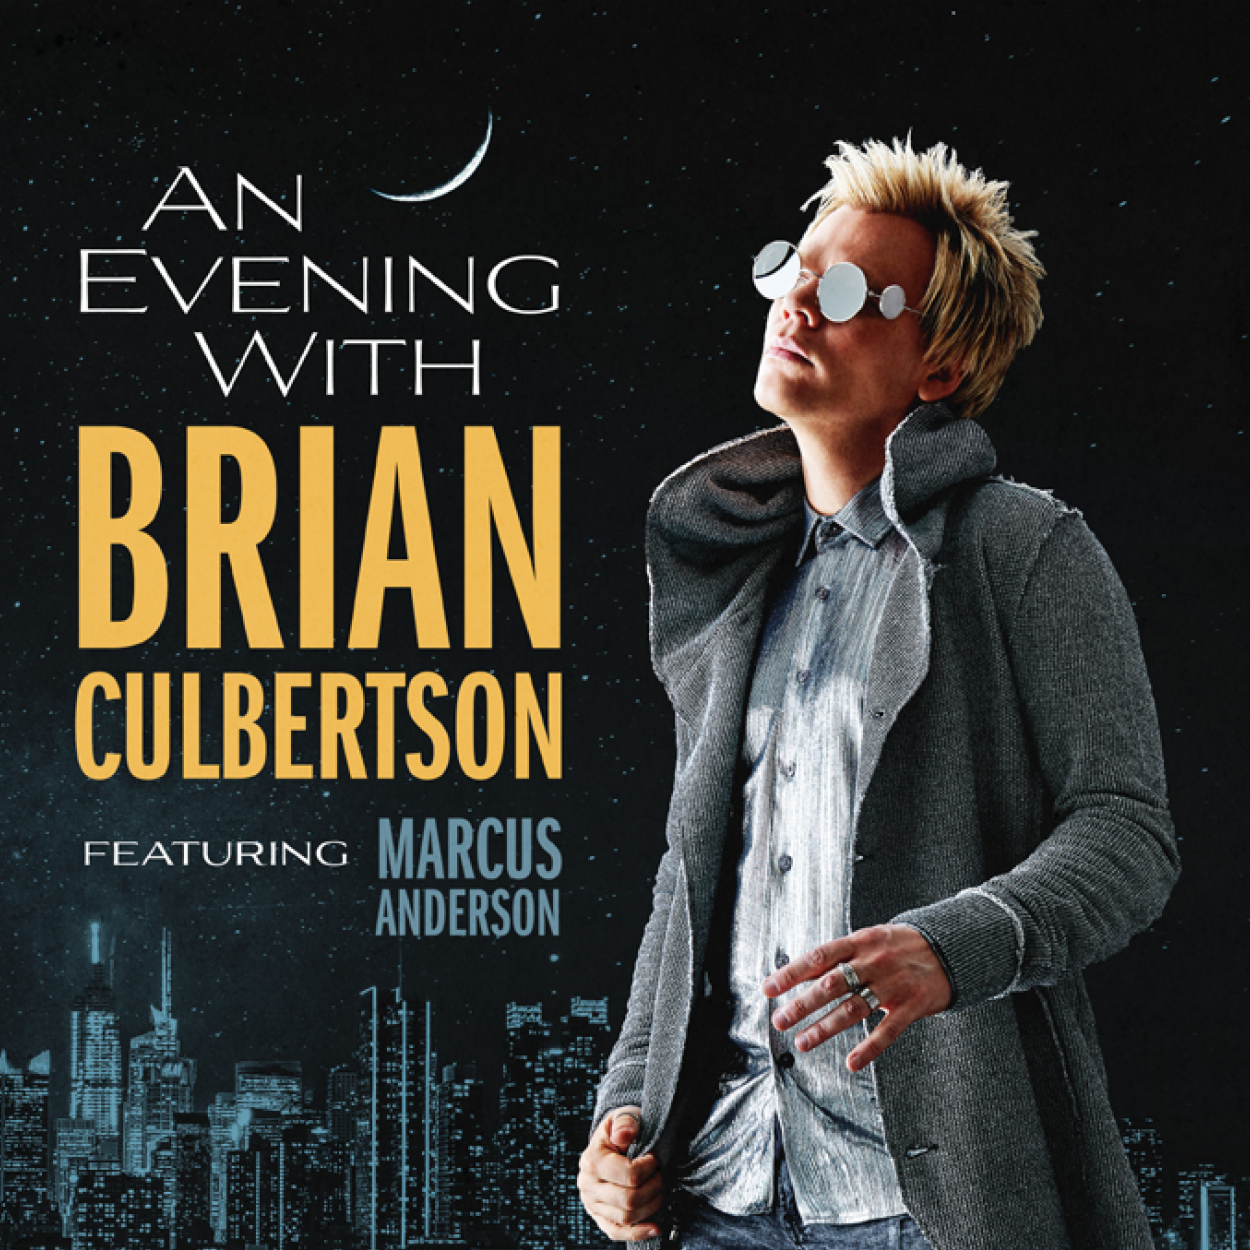 An Evening With Brian Culbertson featuring Marcus Anderson